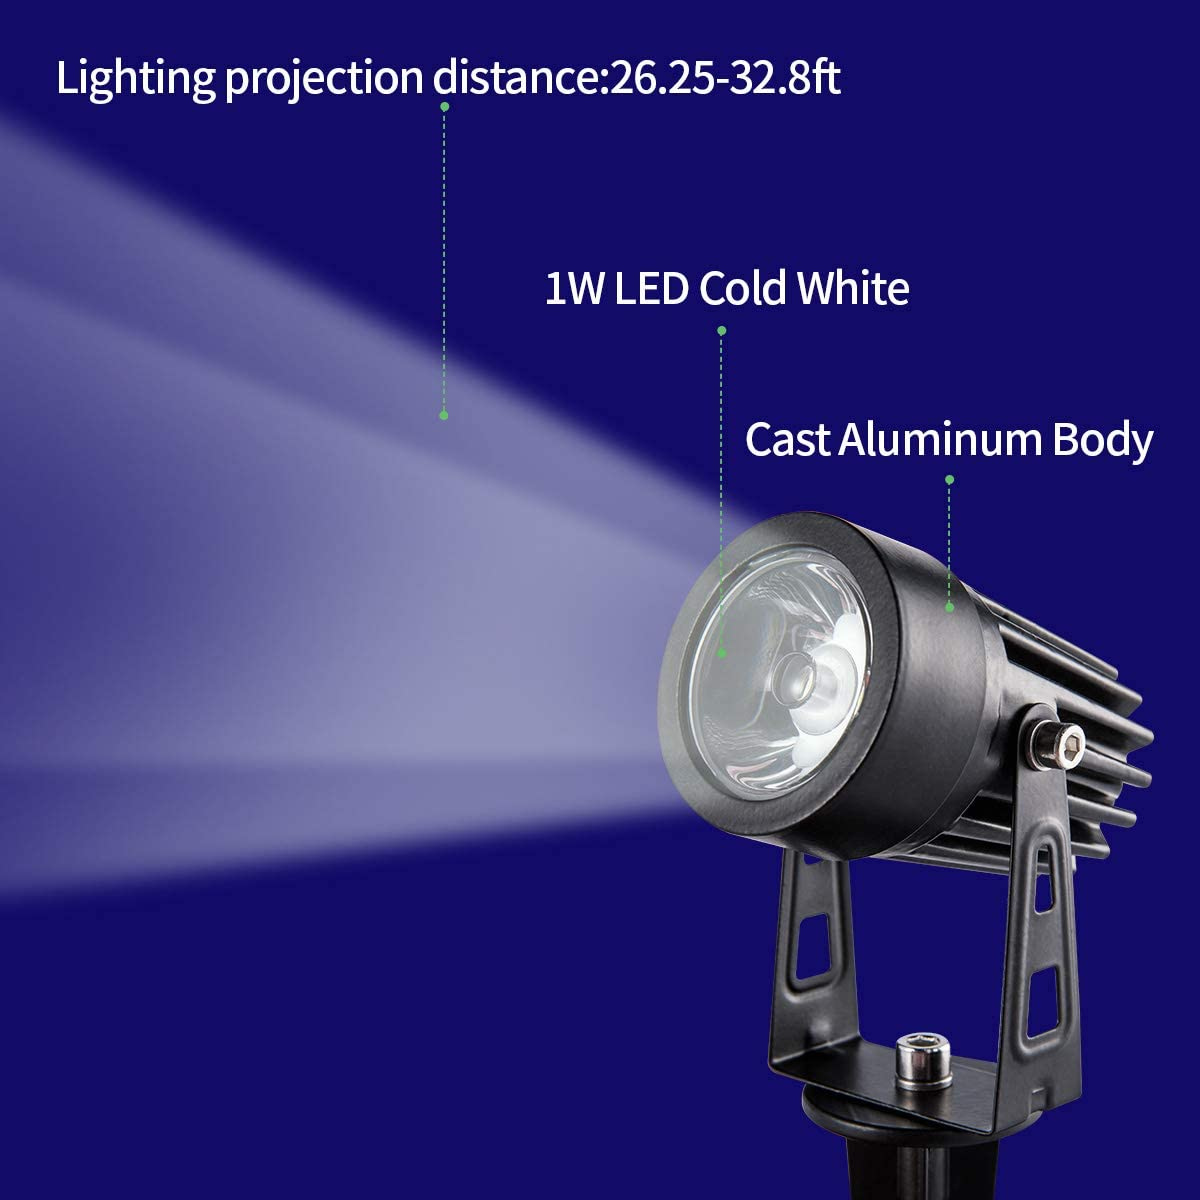 Solar Lights Outdoor 4 Heads Spotlights Adjustable Wall Lamps Bright Solar Landscape Lighting Auto On Off Waterproof Security Lights for Patio Garden Yard Deck Trees etc. Cold White